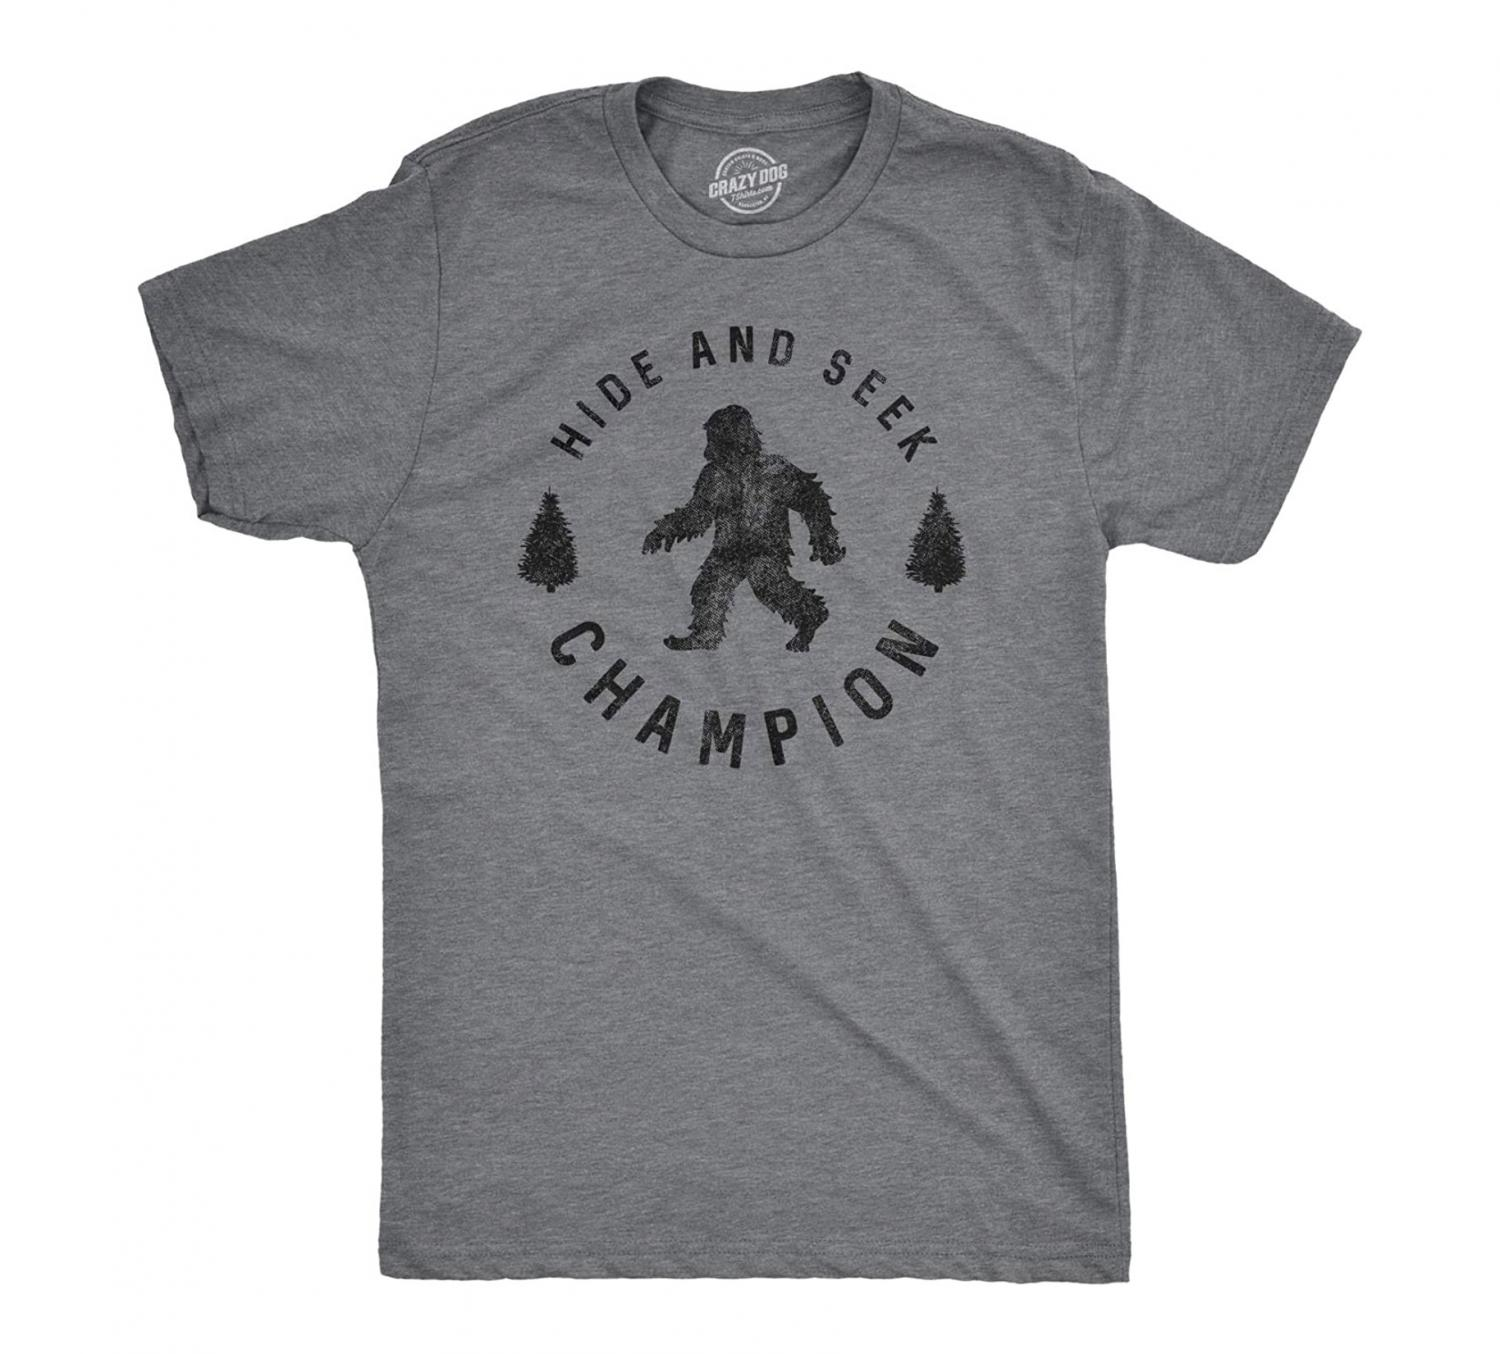 A Sasquatch T-Shirt (Hide and Seek Champion)